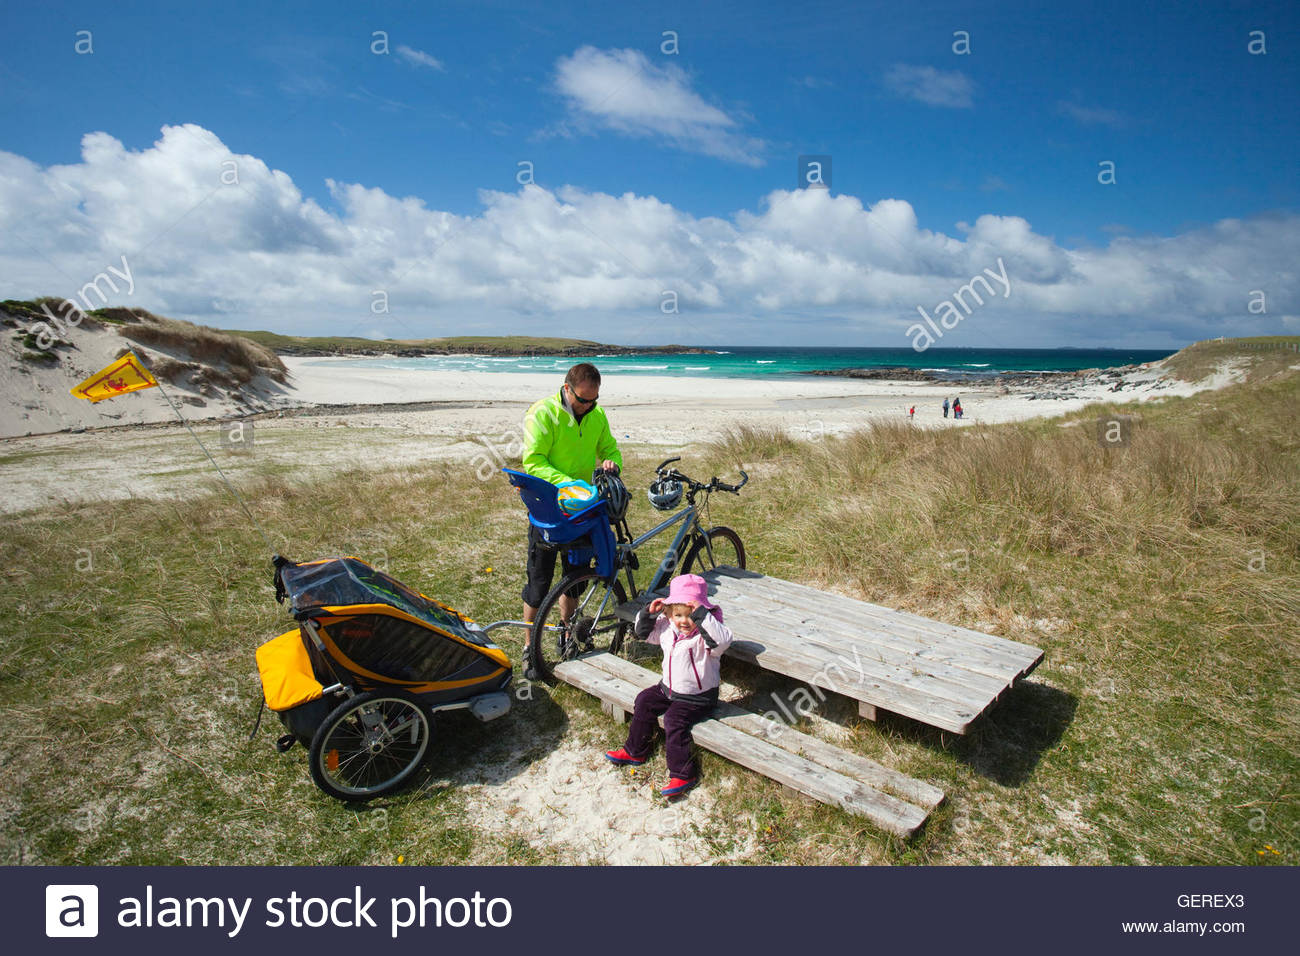 A family enjoy a day on Hosta Beach or Traigh Stir after cycling there, North Uist, Outer Hebrides, Scotland. - Stock Image